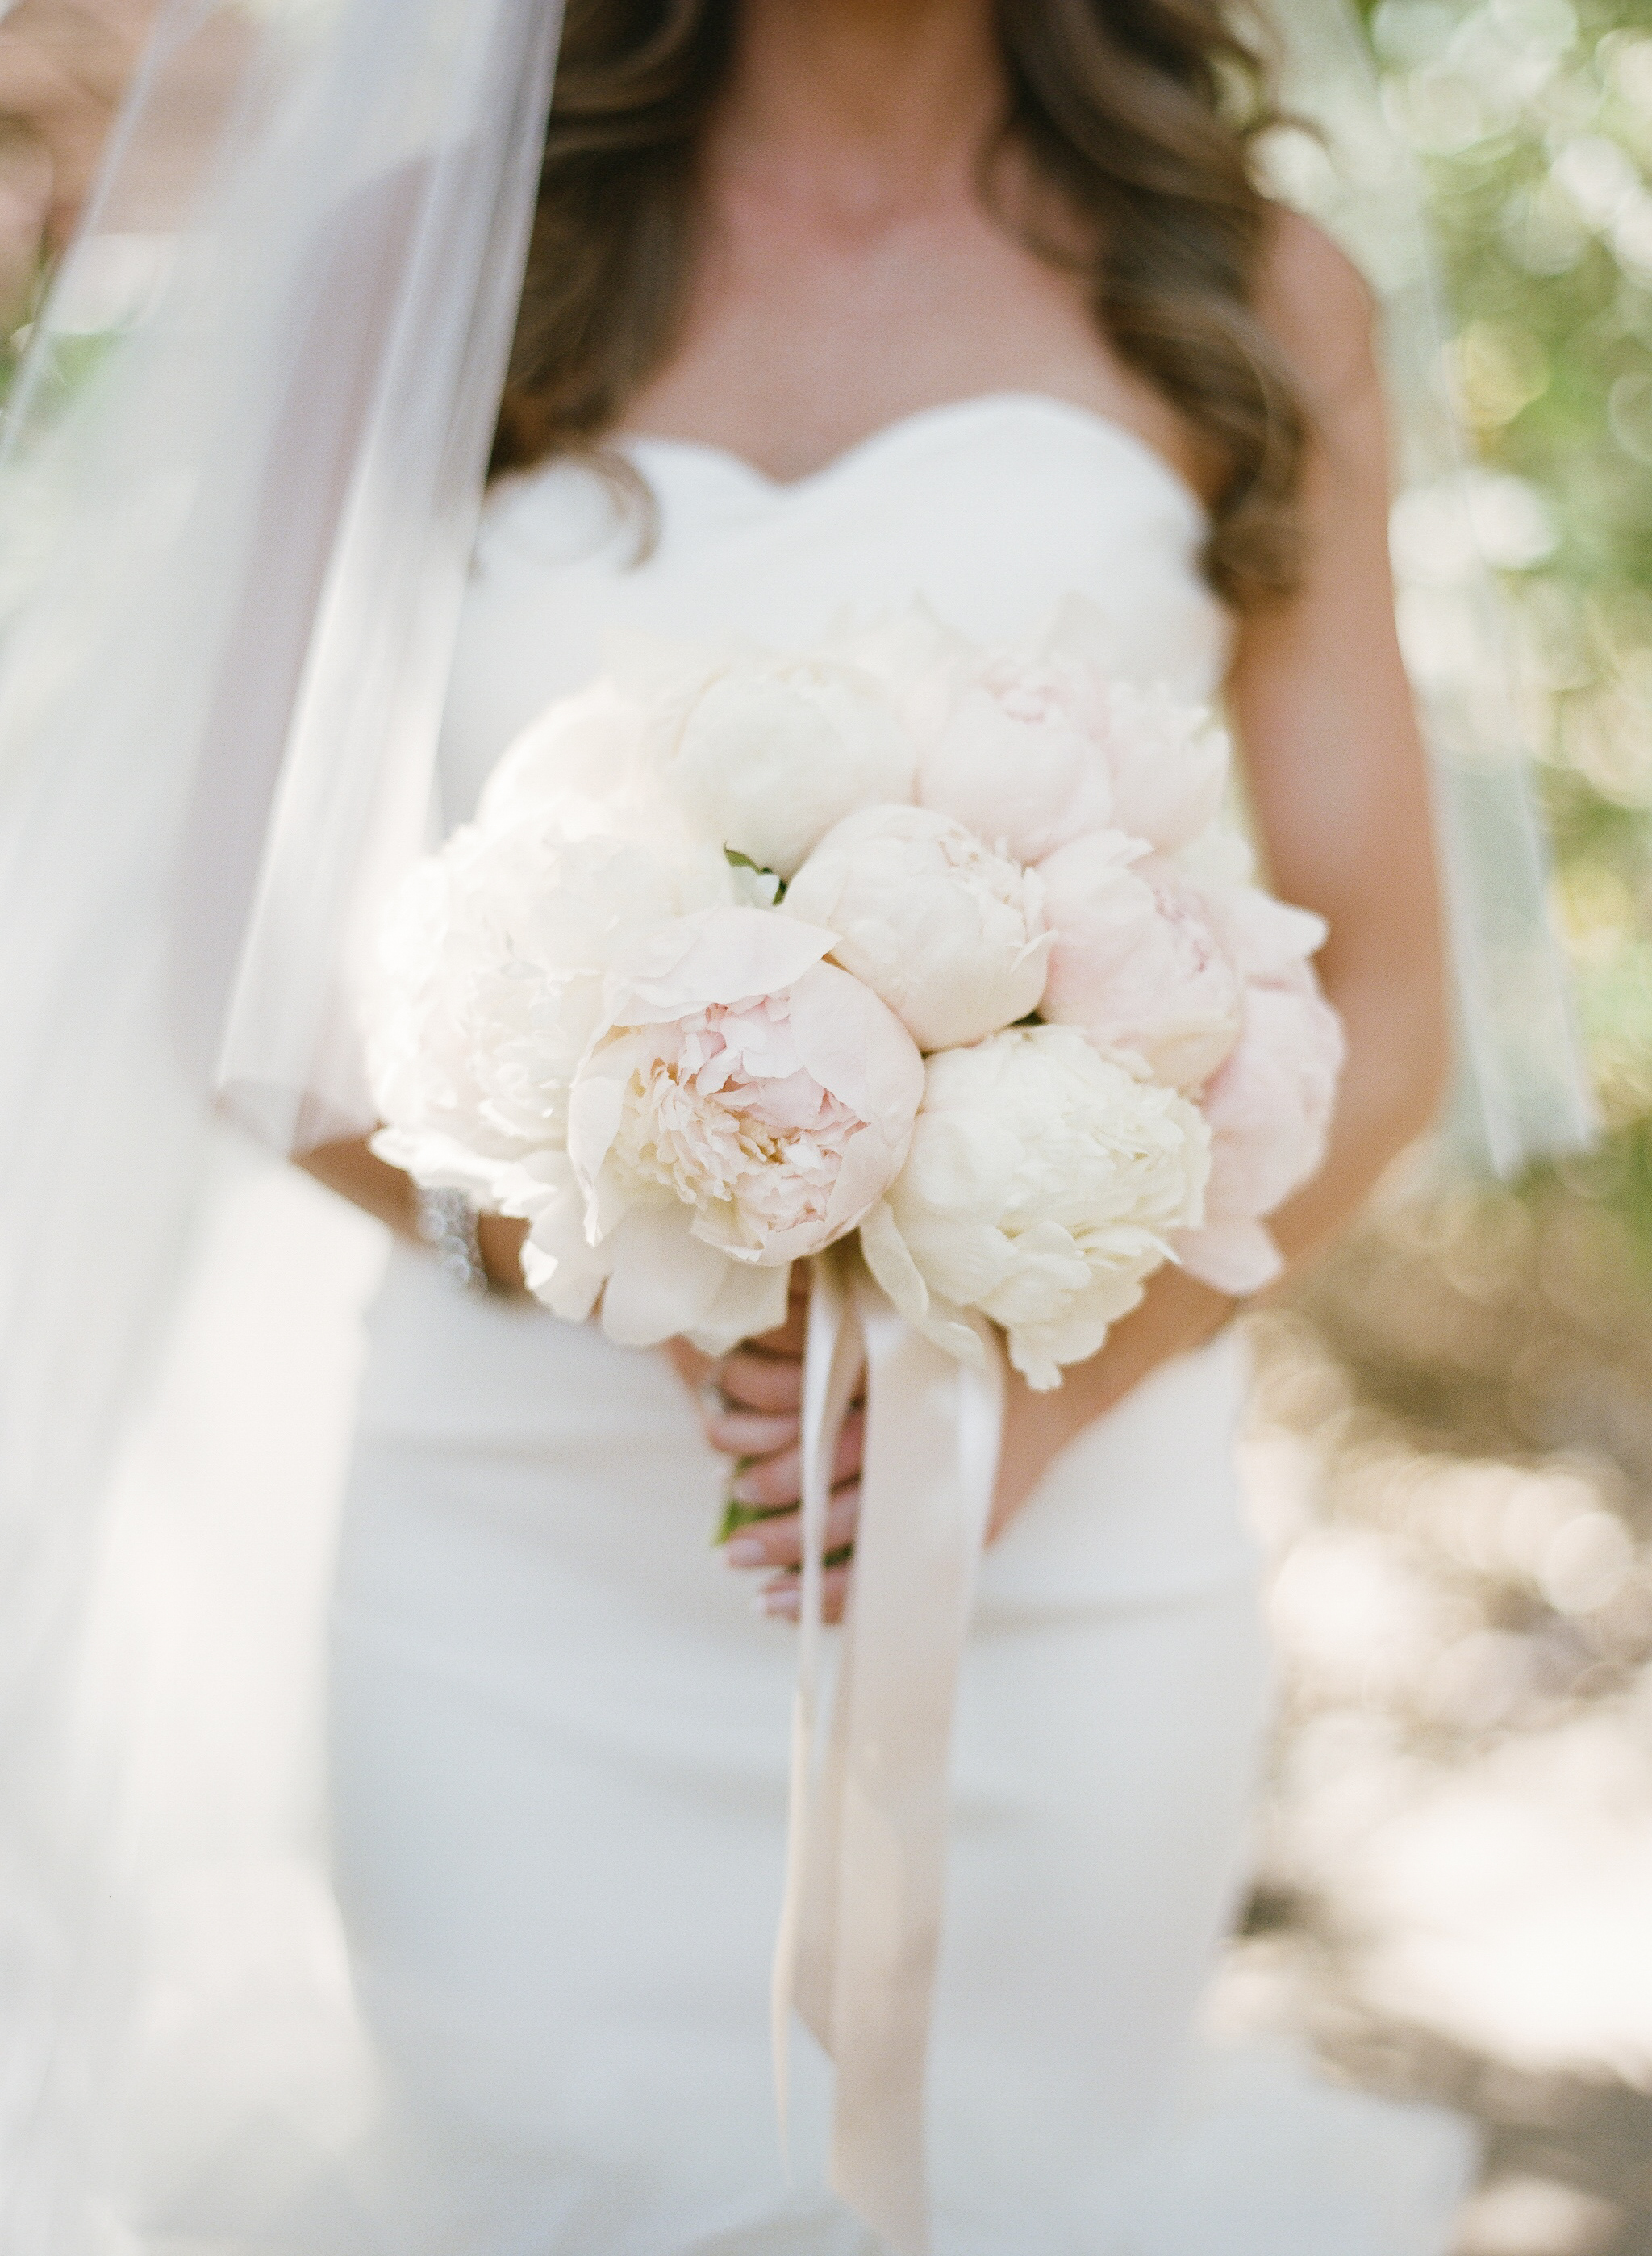 A glowing bride holds her bouquet of white and blush florals, wearing a strapless sweetheart-neckline gown; photo by Sylvie Gil